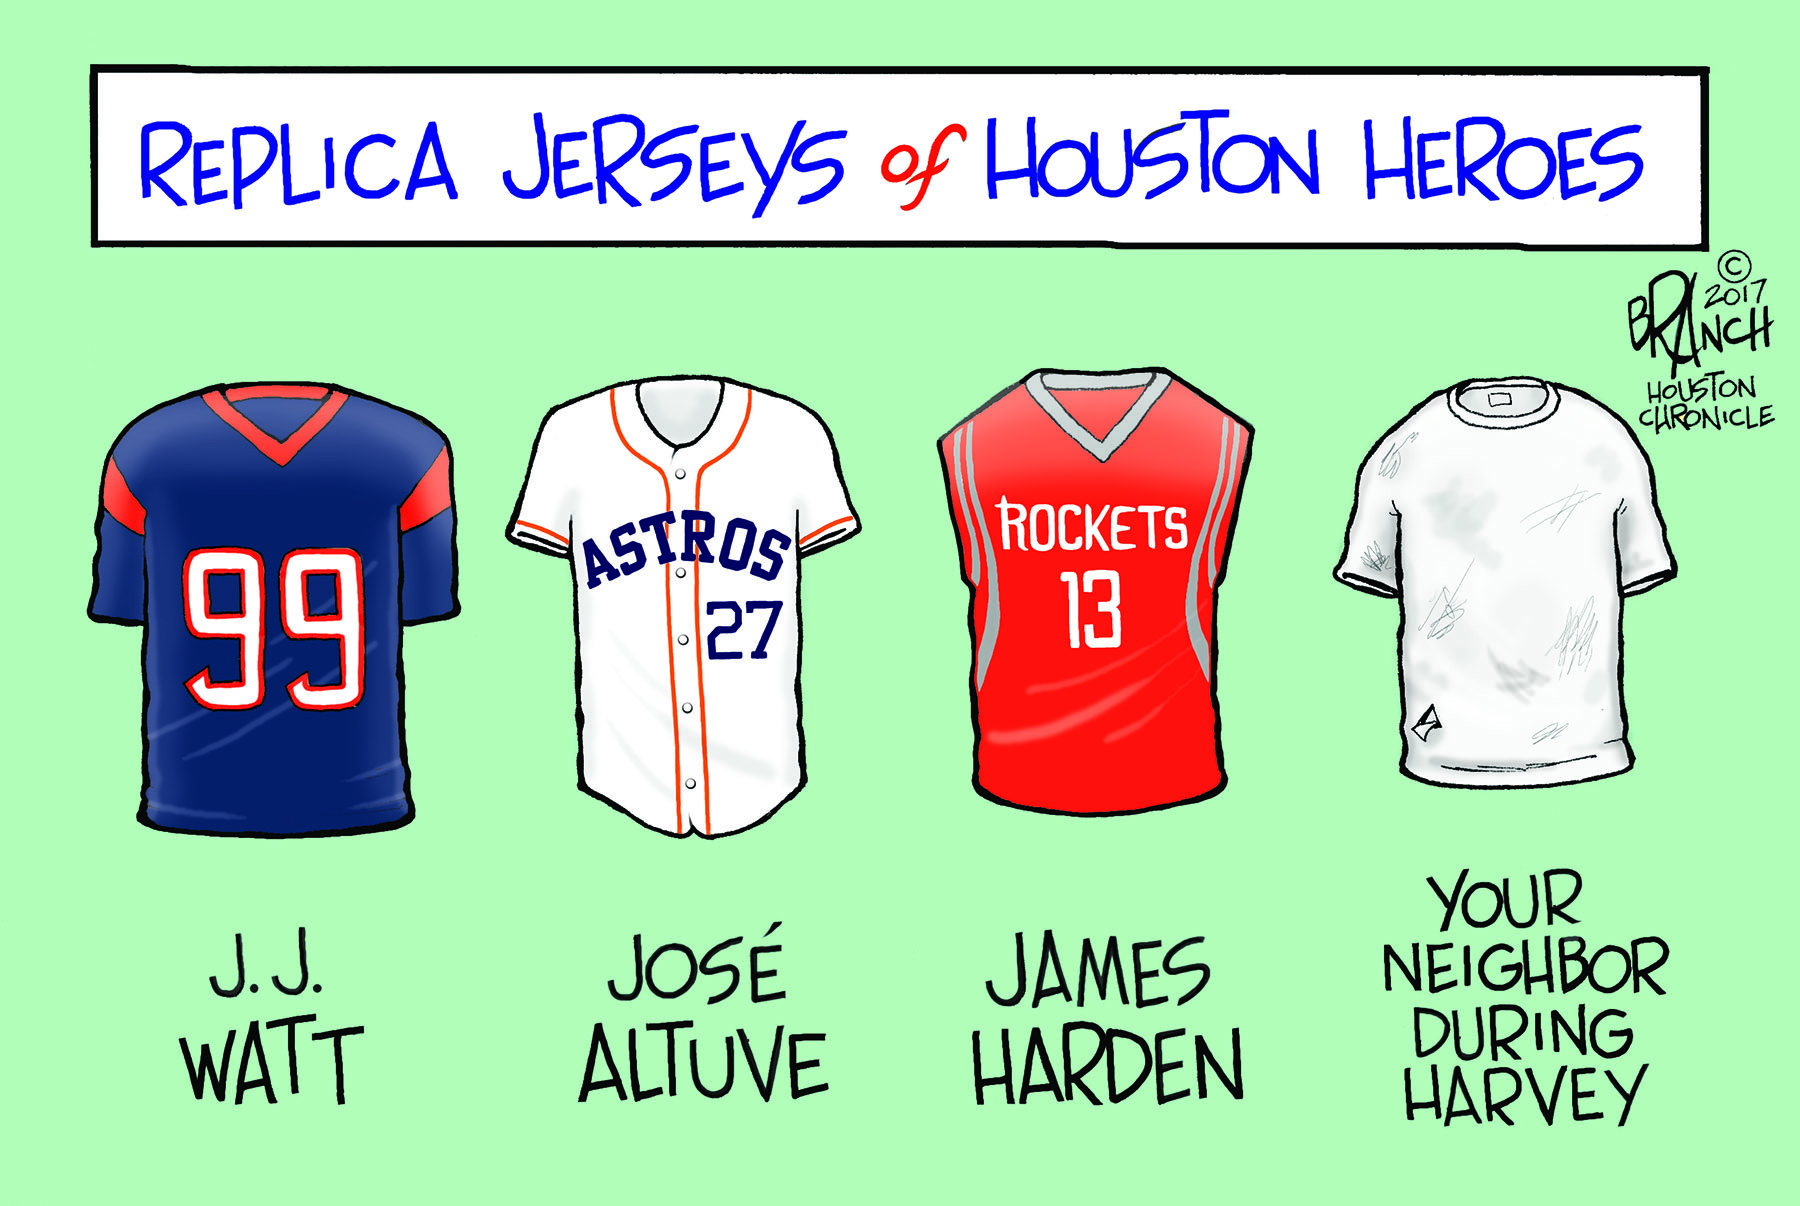 092517 chron houston heroes jerseys revised web